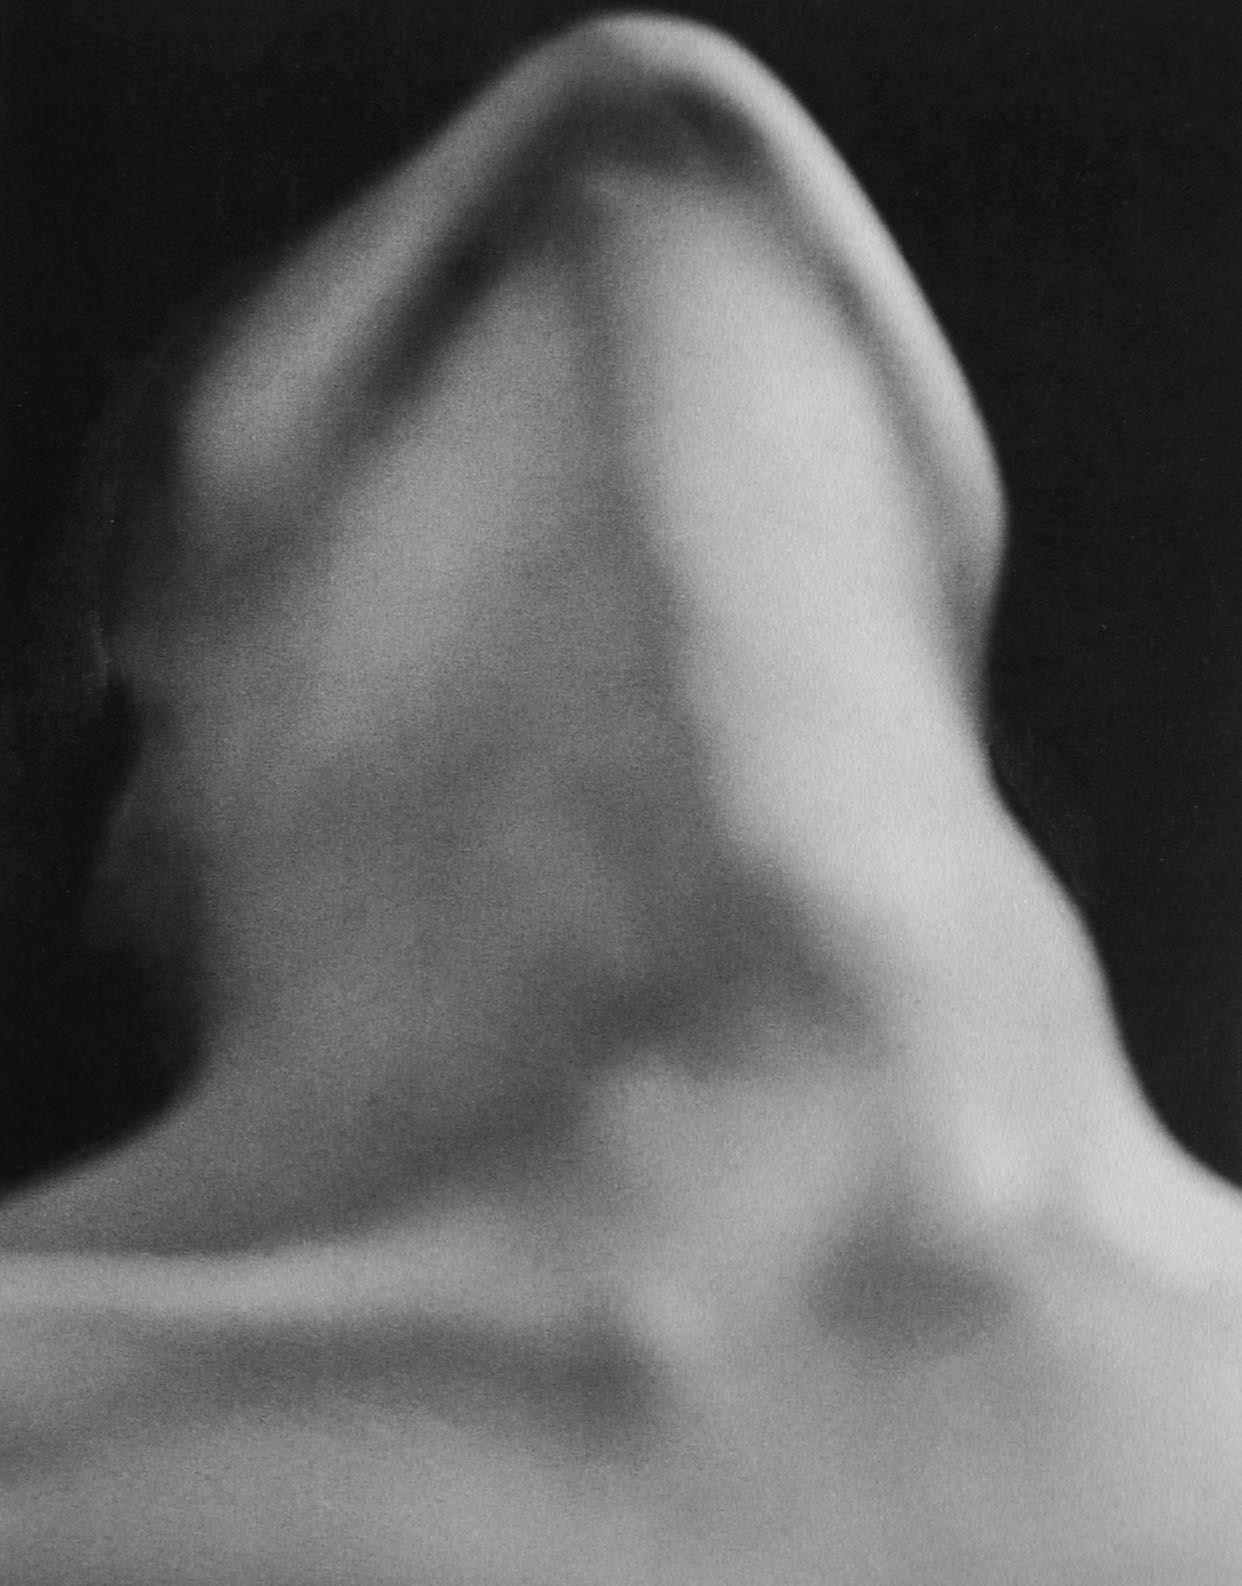 Man Ray: Anatomy